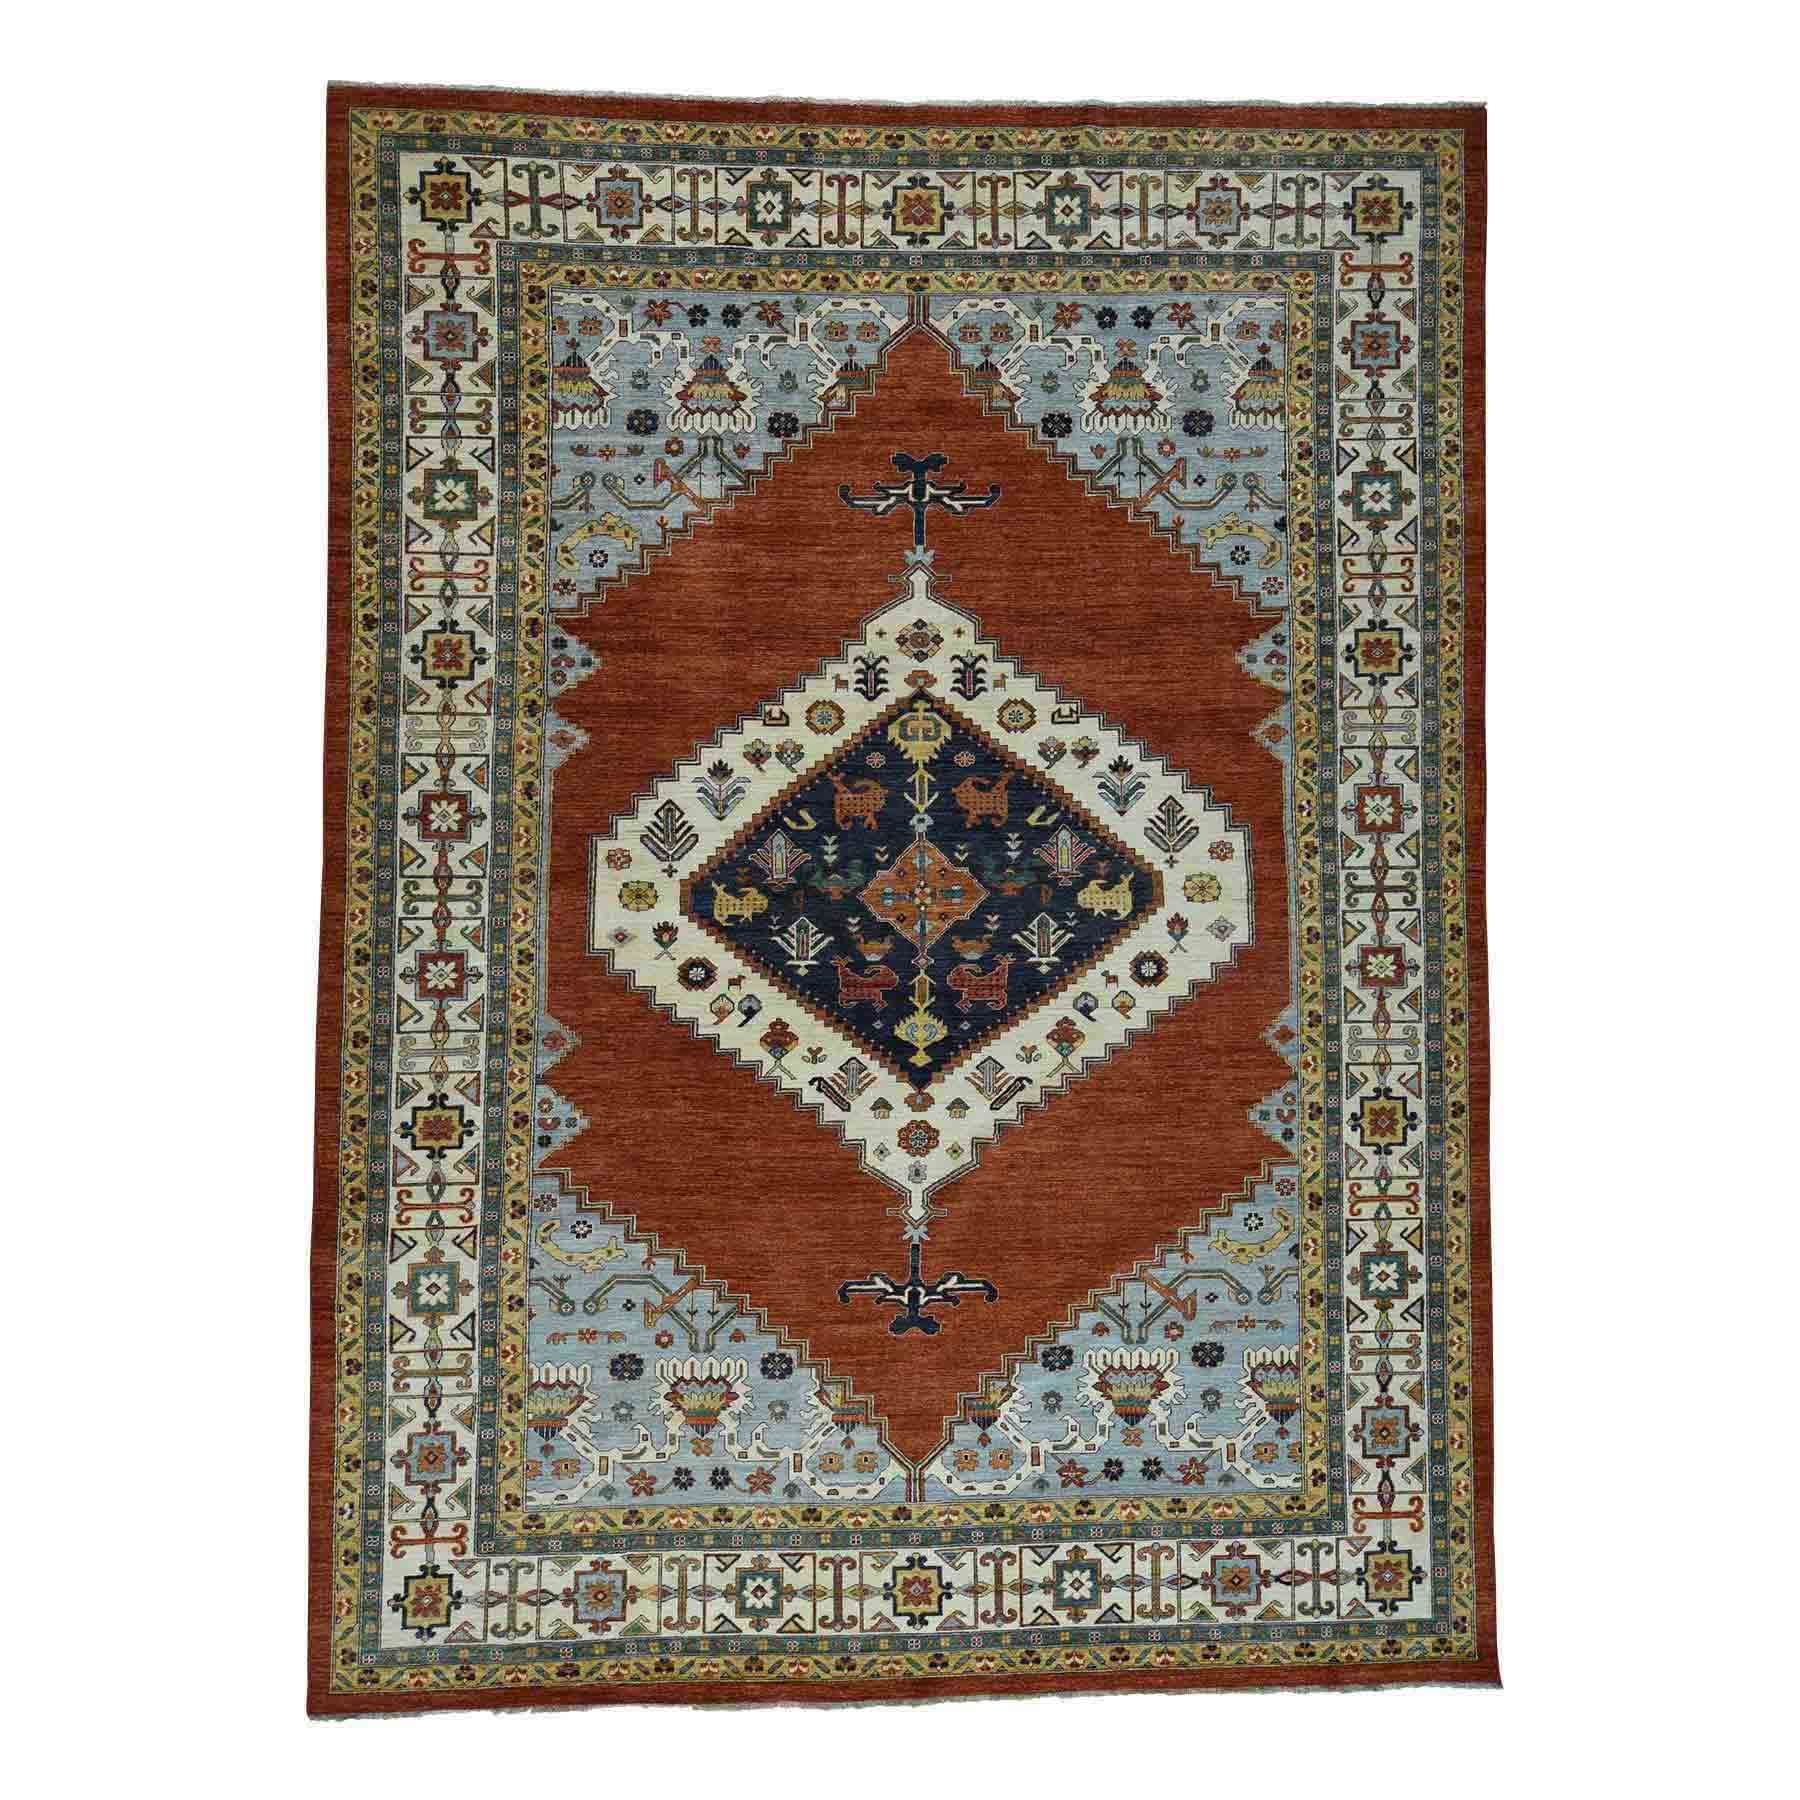 This Is A Gorgeous Rug Whose Colors Are Great But It S Such A Distinctive Medallion That I Think It Won T Wor Wool Area Rugs Oriental Wool Rugs Rugs On Carpet